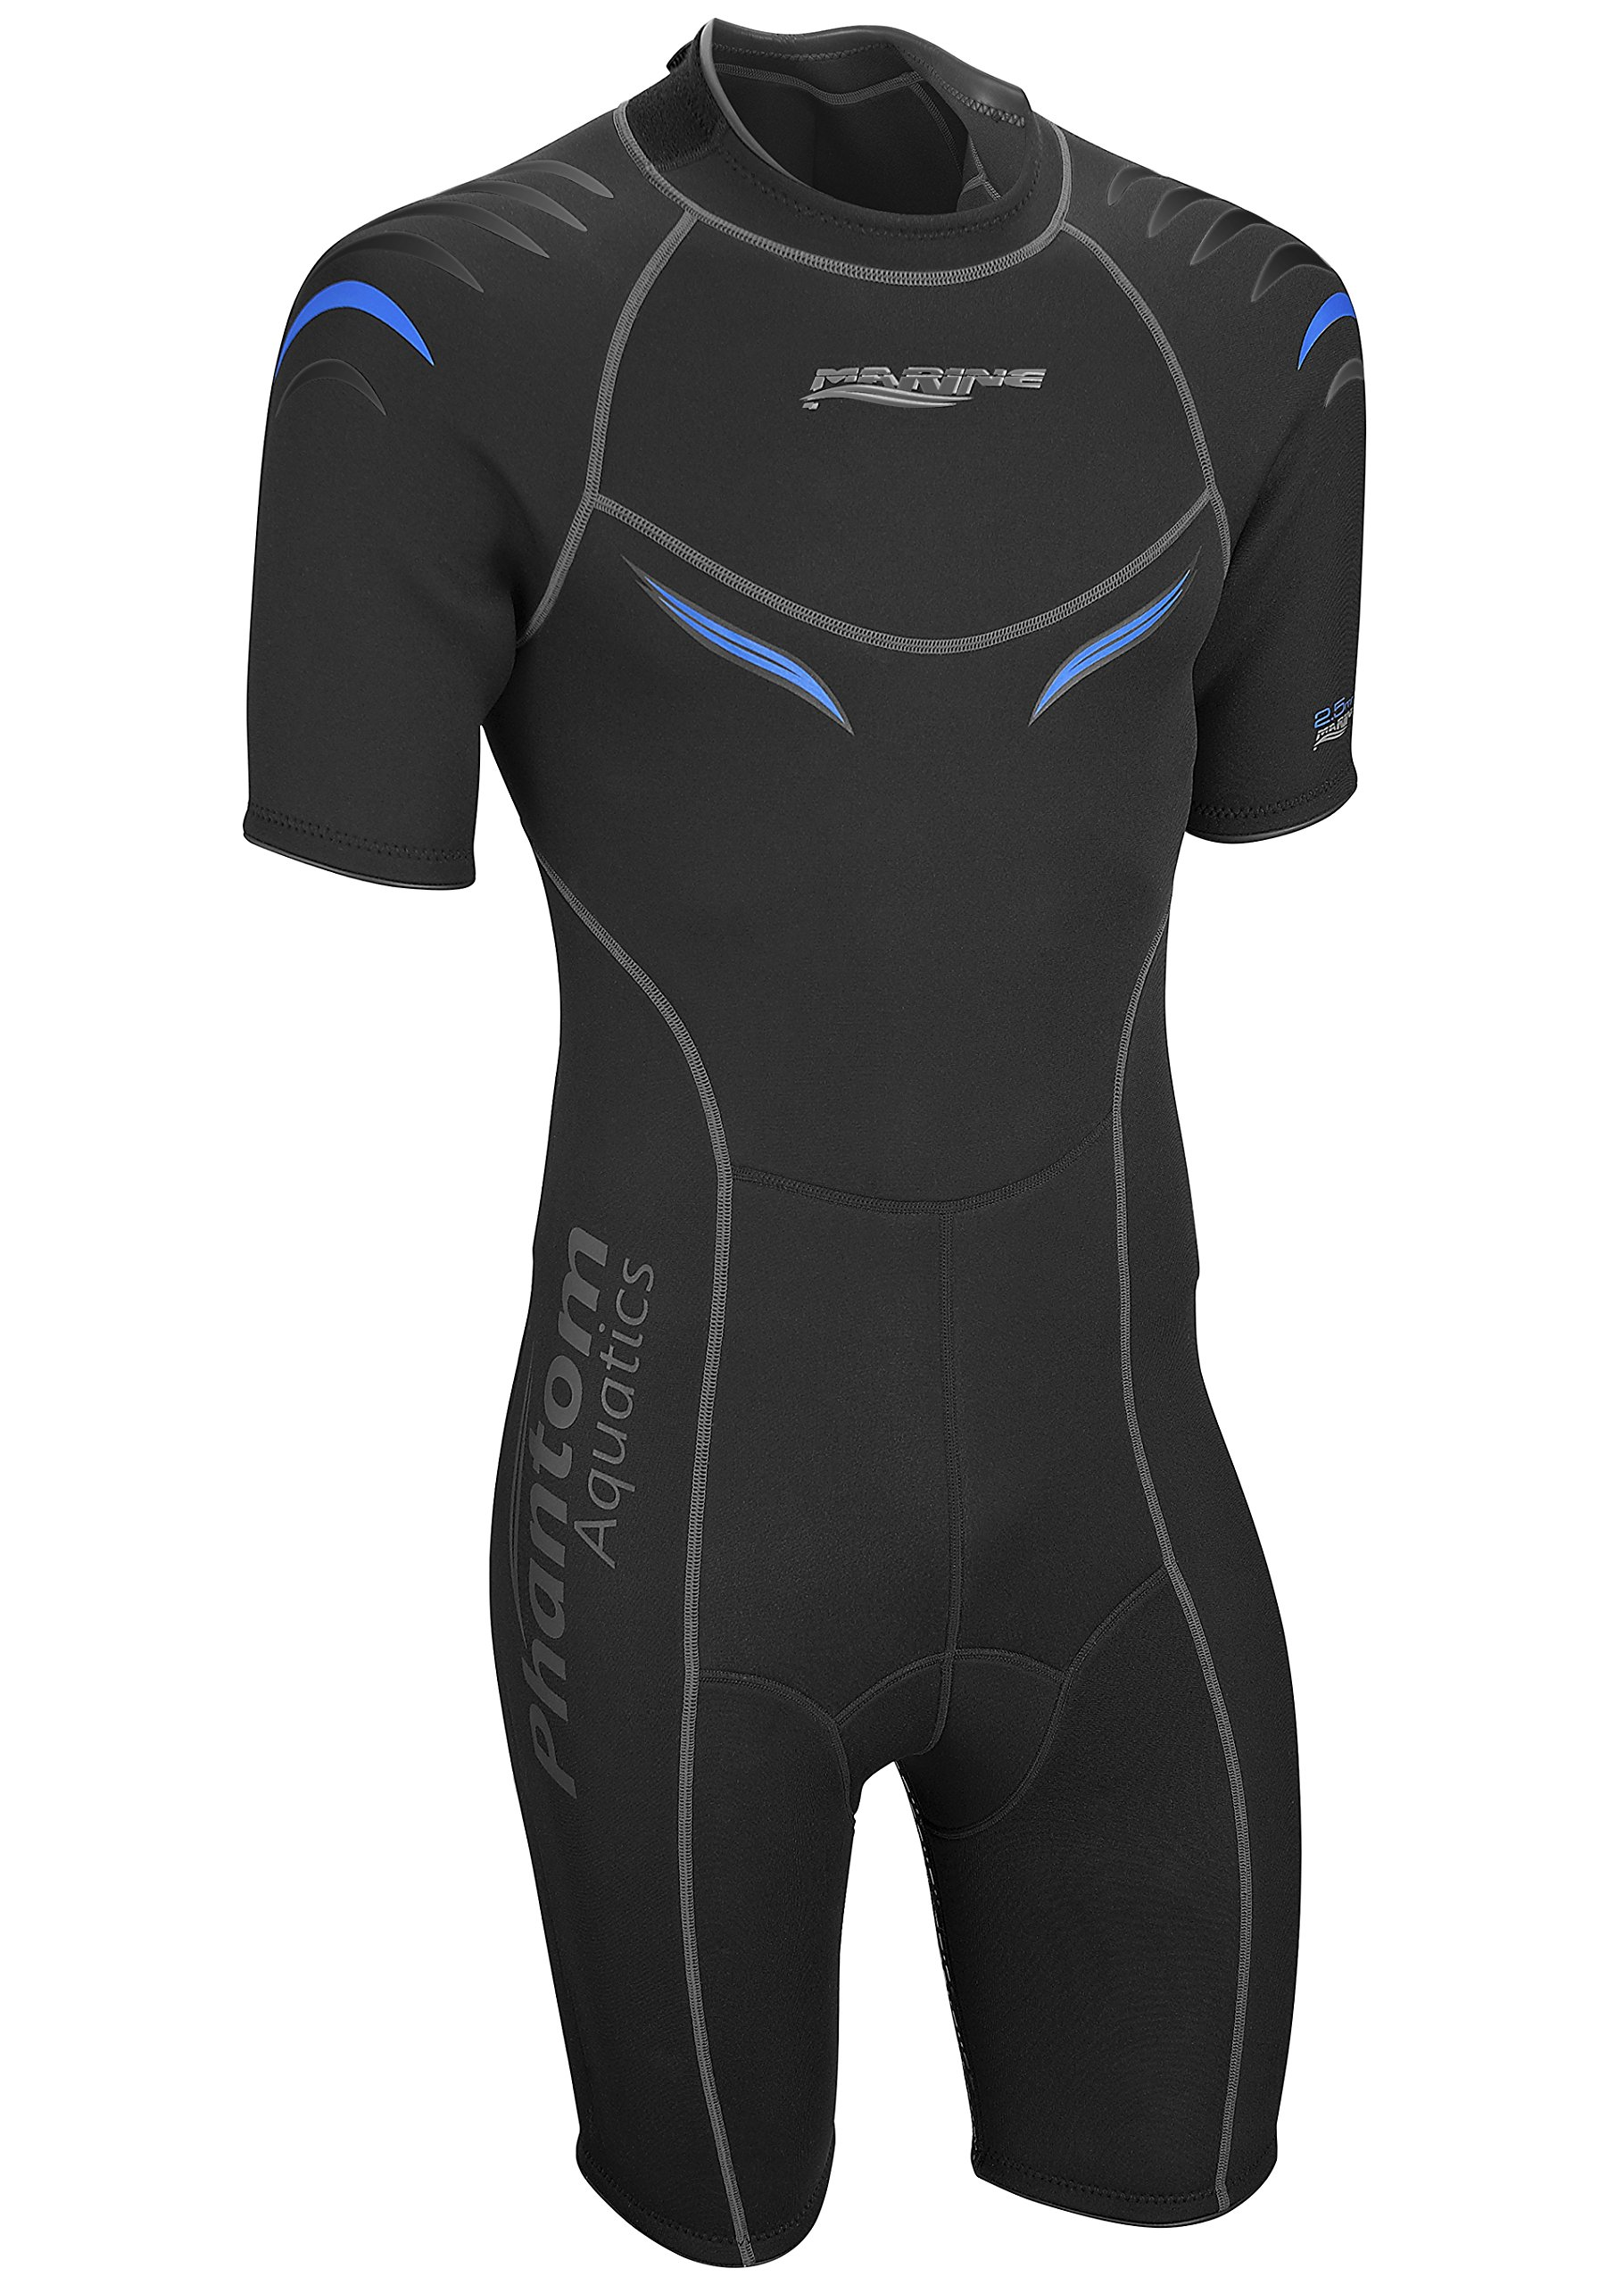 Phantom Aquatics Marine Men's Shorty Wetsuit, Black Blue - XX-Large by Phantom Aquatics